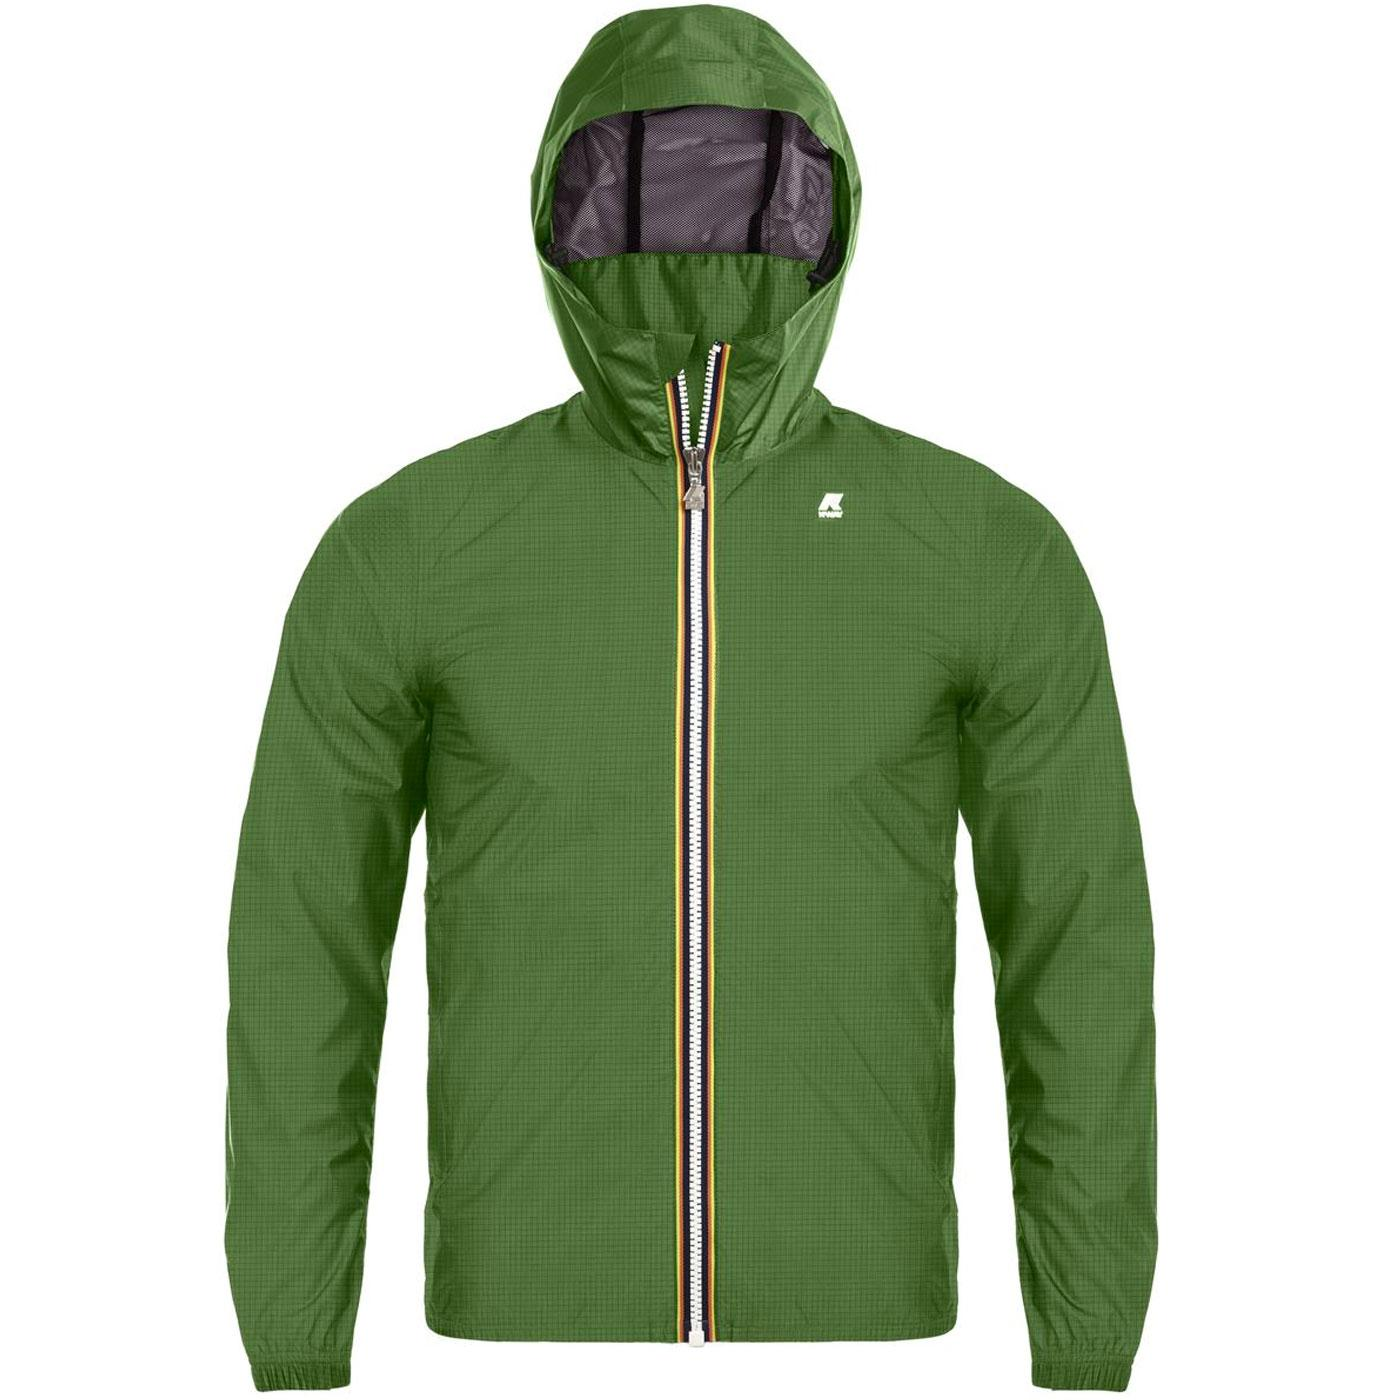 K-WAY Jukes Light Ripstop Hooded Technical Jacket